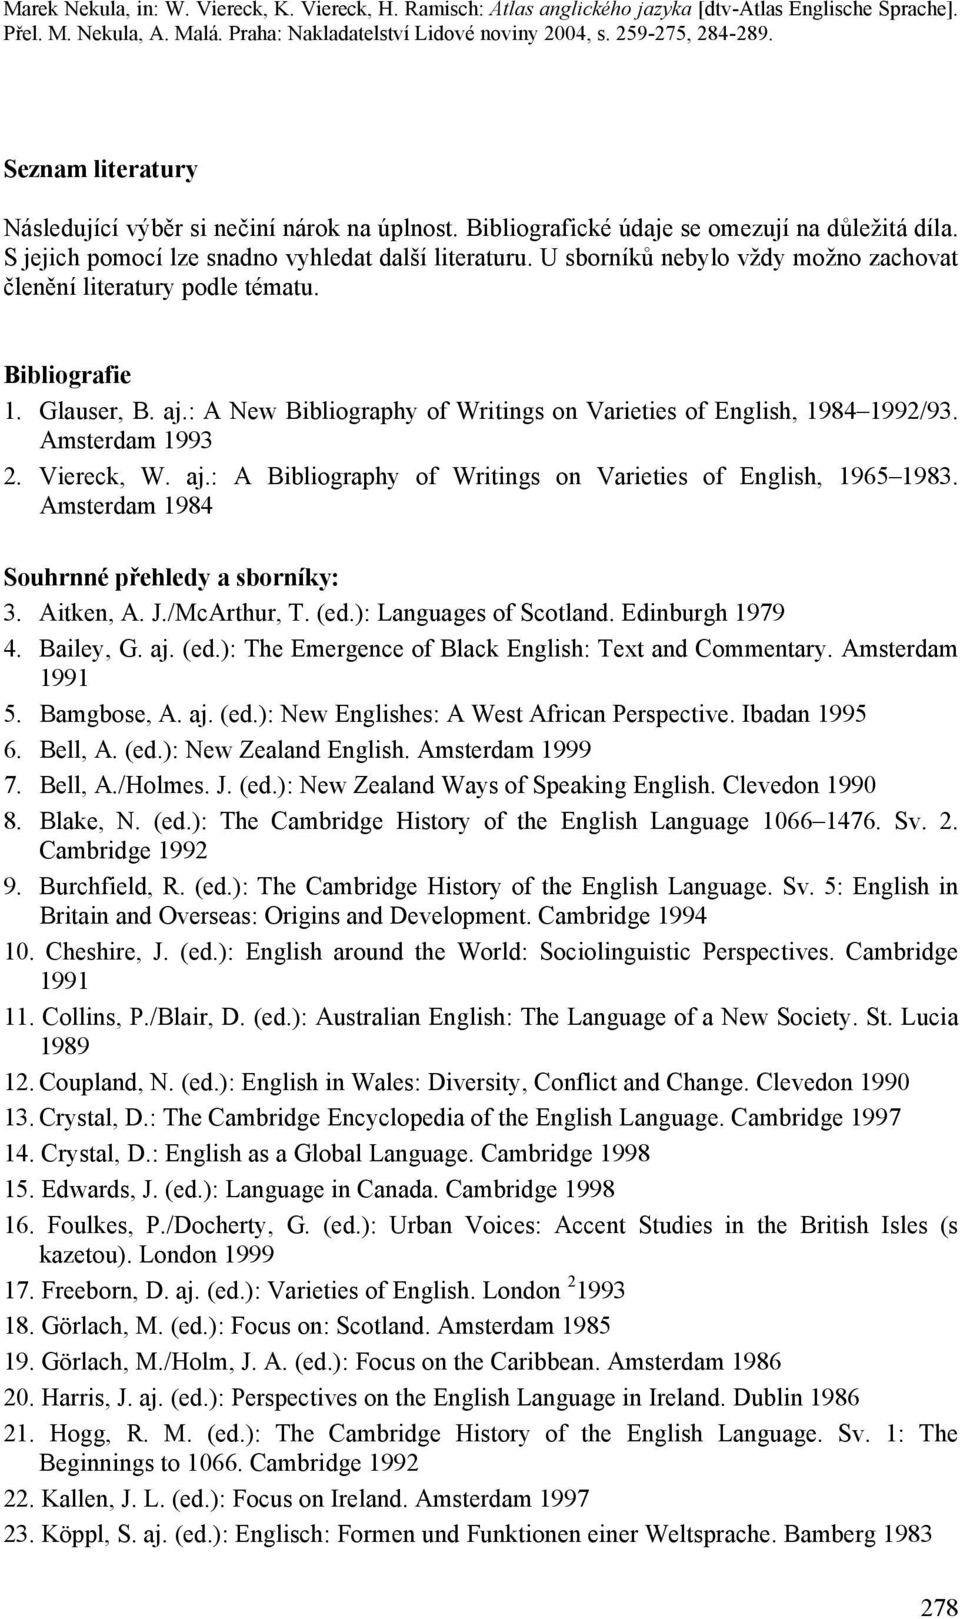 Viereck, W. aj.: A Bibliography of Writings on Varieties of English, 1965 1983. Amsterdam 1984 Souhrnné přehledy a sborníky: 3. Aitken, A. J./McArthur, T. (ed.): Languages of Scotland.